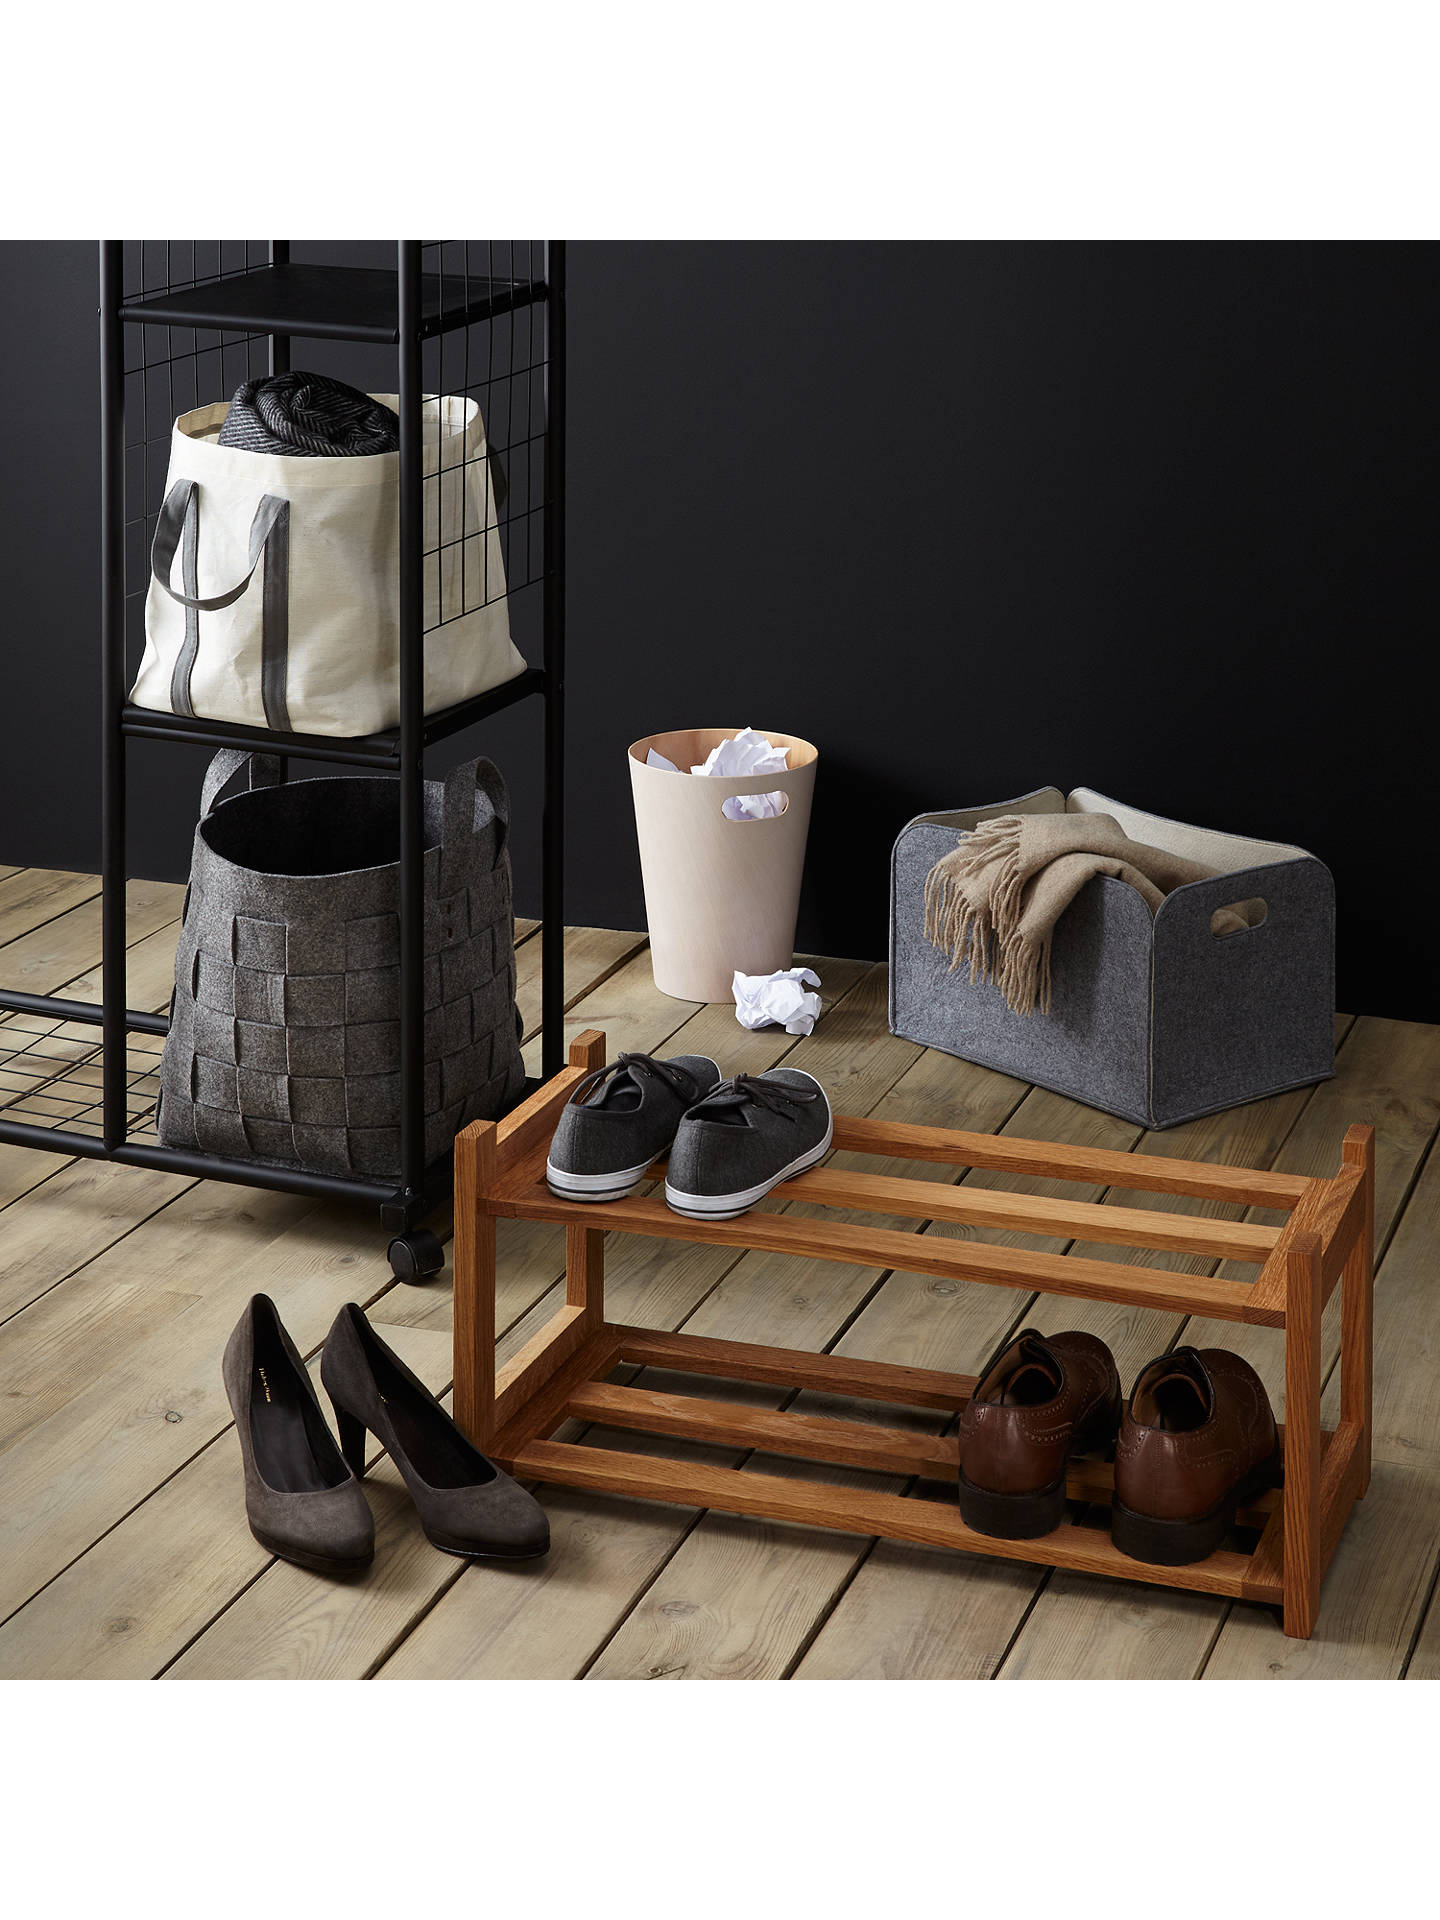 Buy John Lewis & Partners Oak Wood Shoe Rack, 2 Tier Online at johnlewis.com